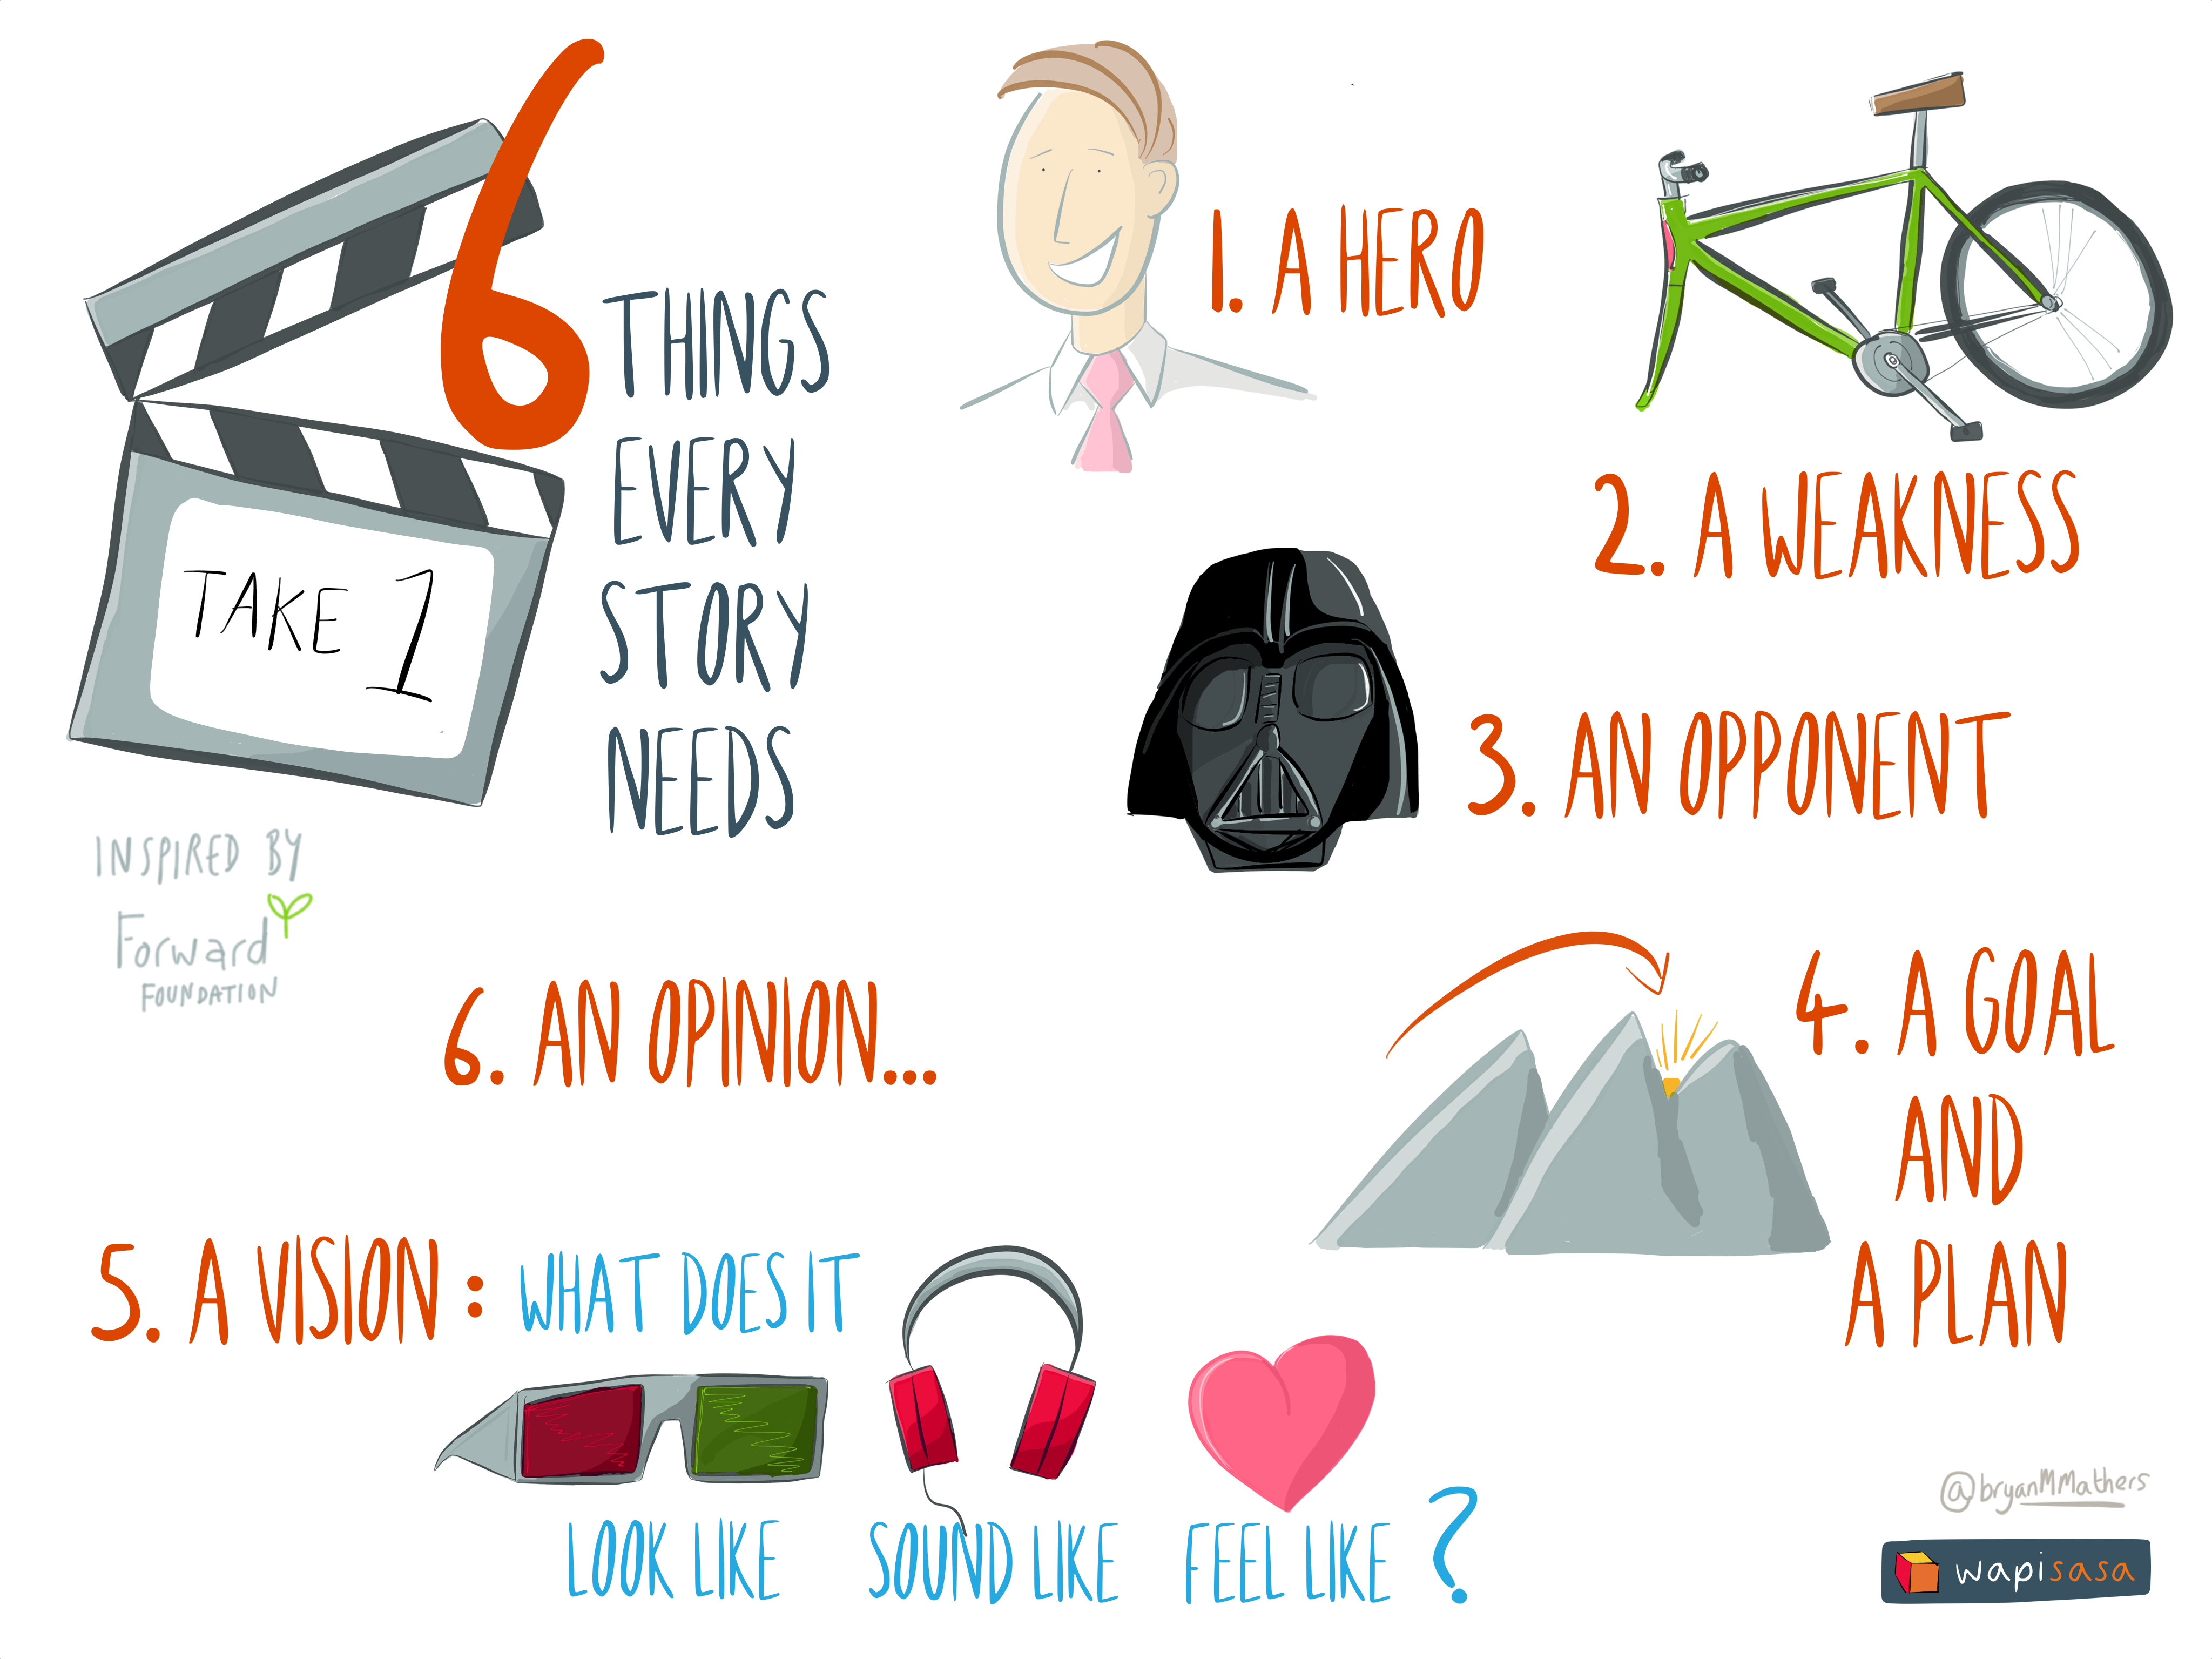 6 things every story needs